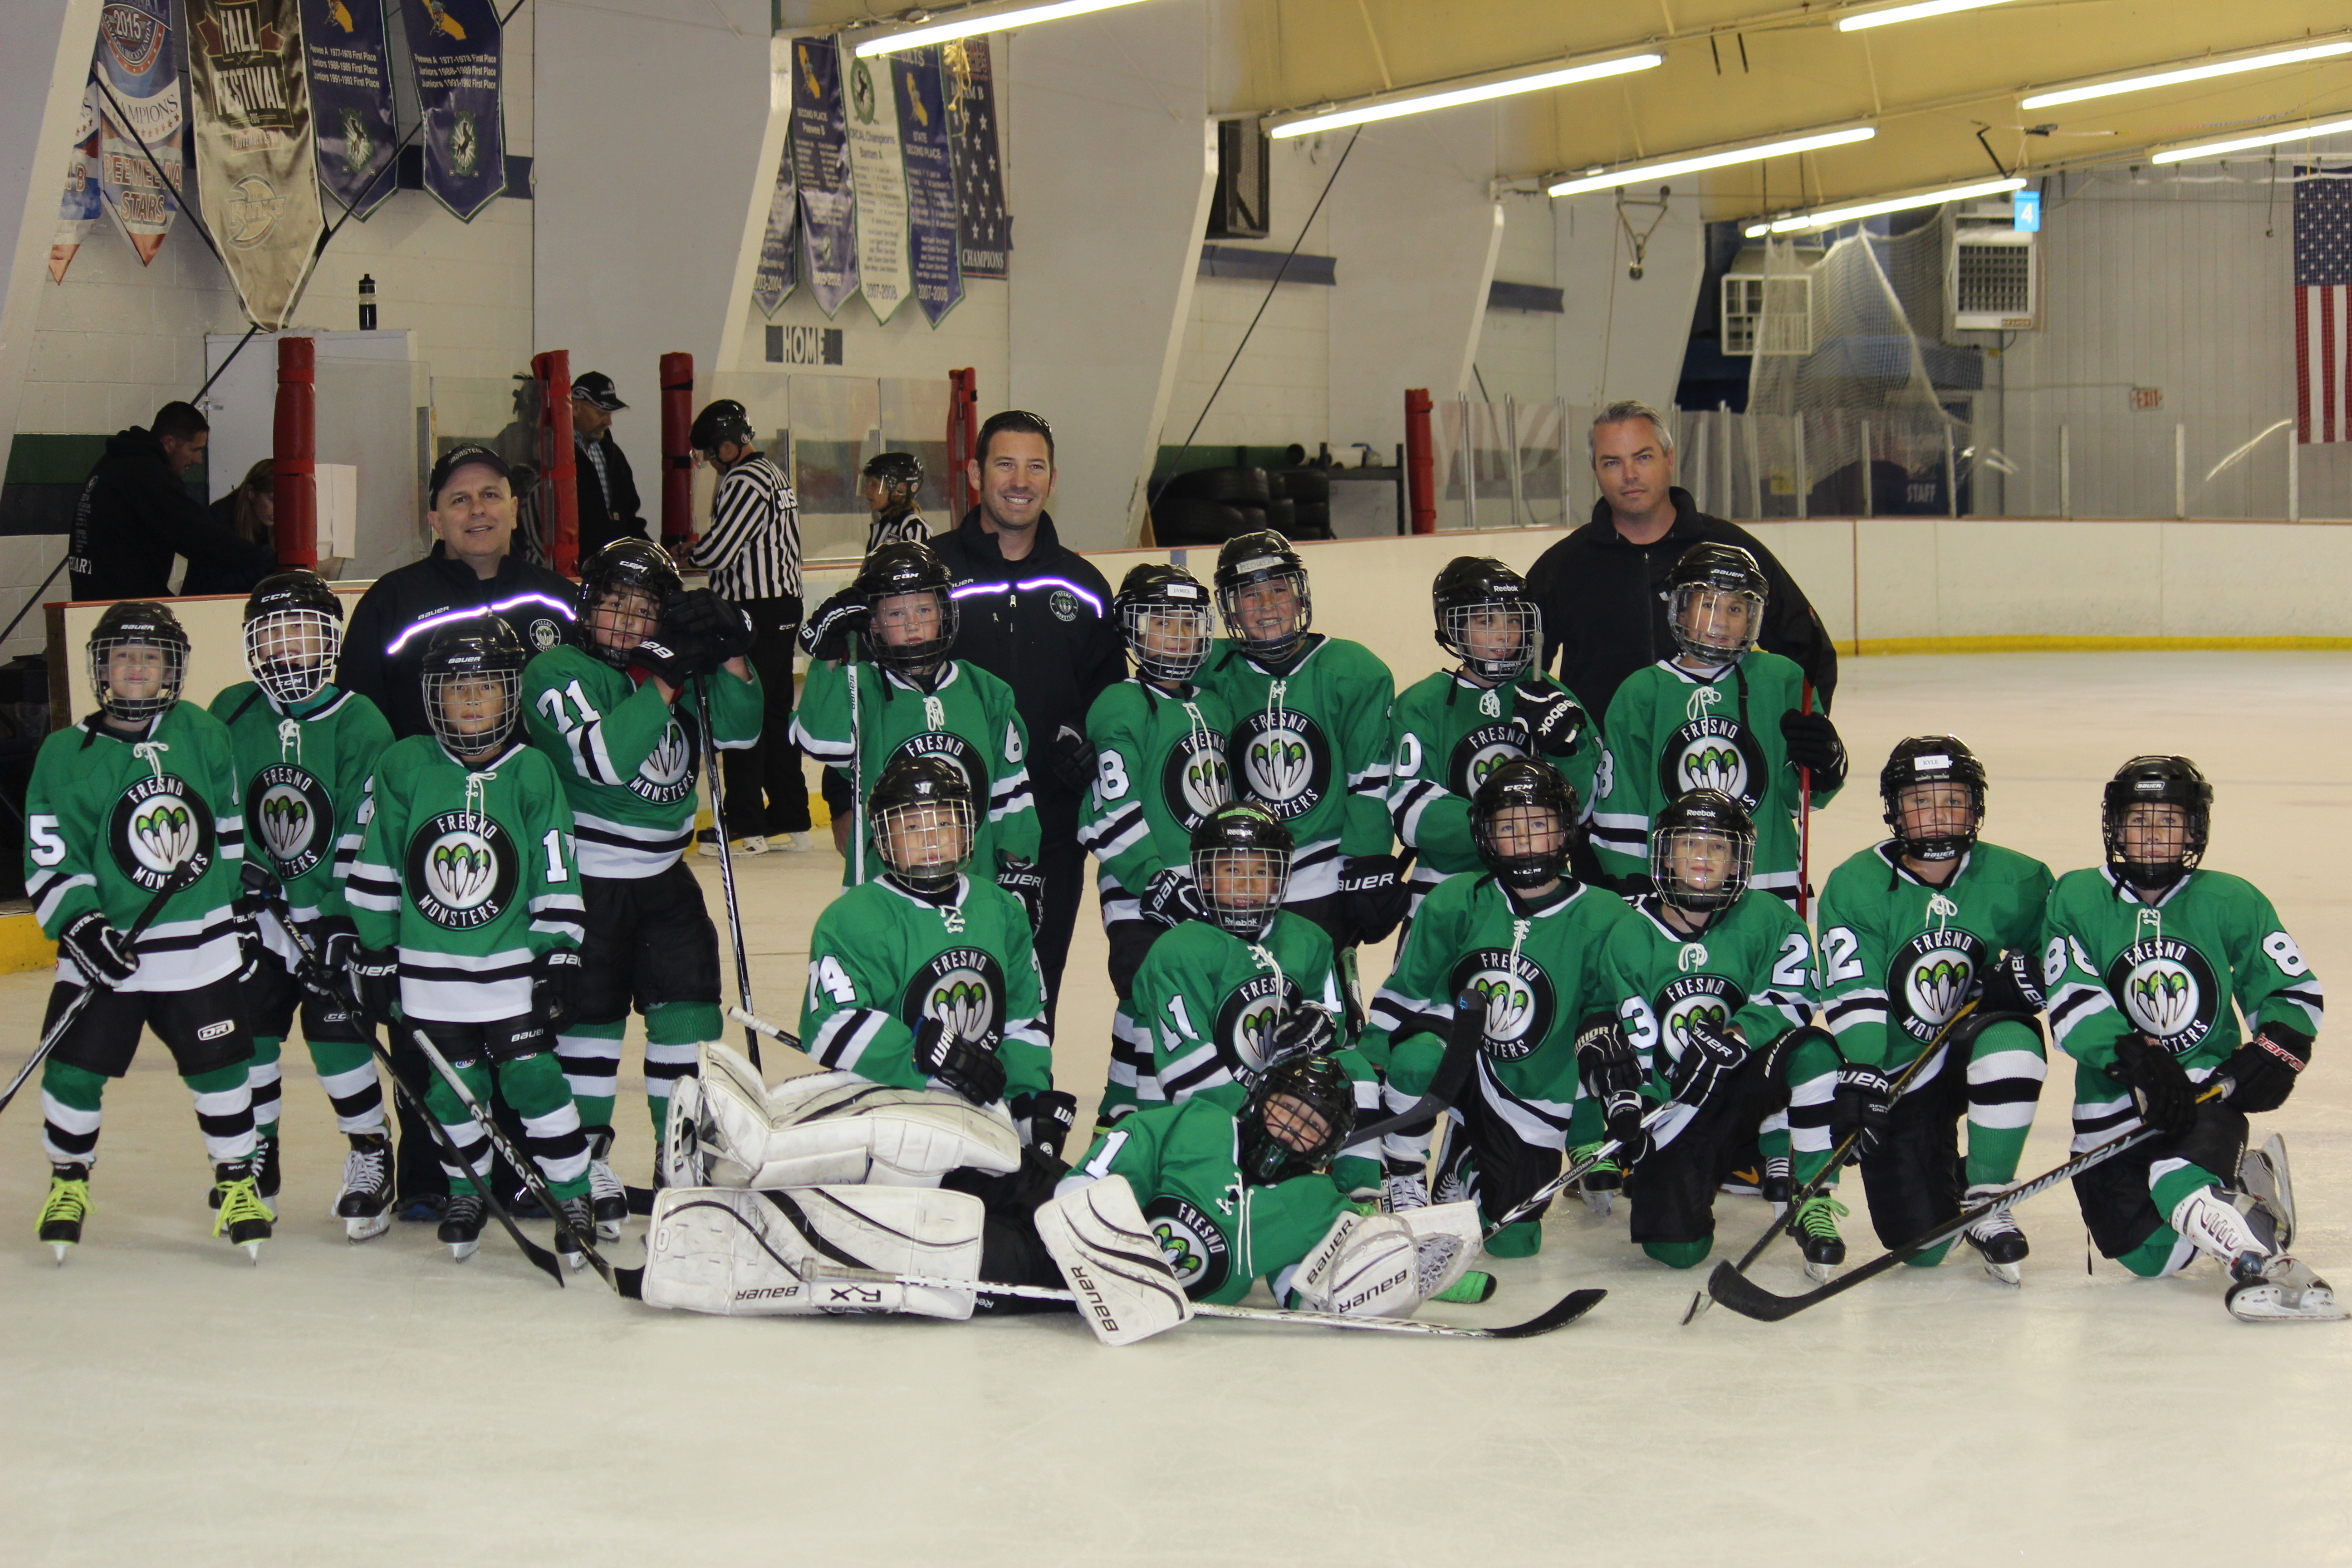 Fresno Monsters Travel Hockey Team